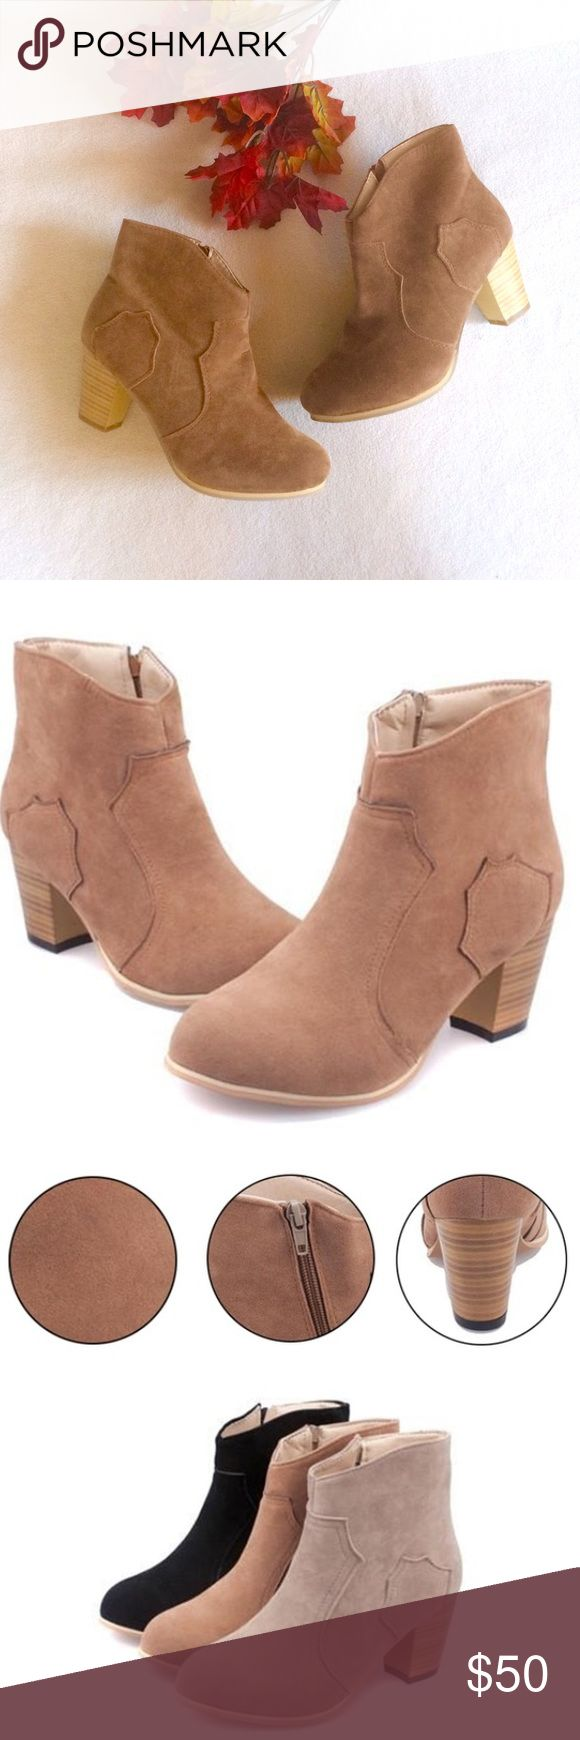 """Camel Ankle Booties New in package camel colored ankle booties. They are faux suede. The color is a bit darker than the stock photos and more like the photo I took myself. They have cheetah print on the inside and zip up the side. It is a European size 38 and fits American women size 7. Shoe is about 9"""" long, 3.5"""" wide, 7"""" tall, with a 2.5"""" heel. Measurements may not be completely exact since it is hard to measure shoes but they are almost exact. These shoes are completely on trend and…"""